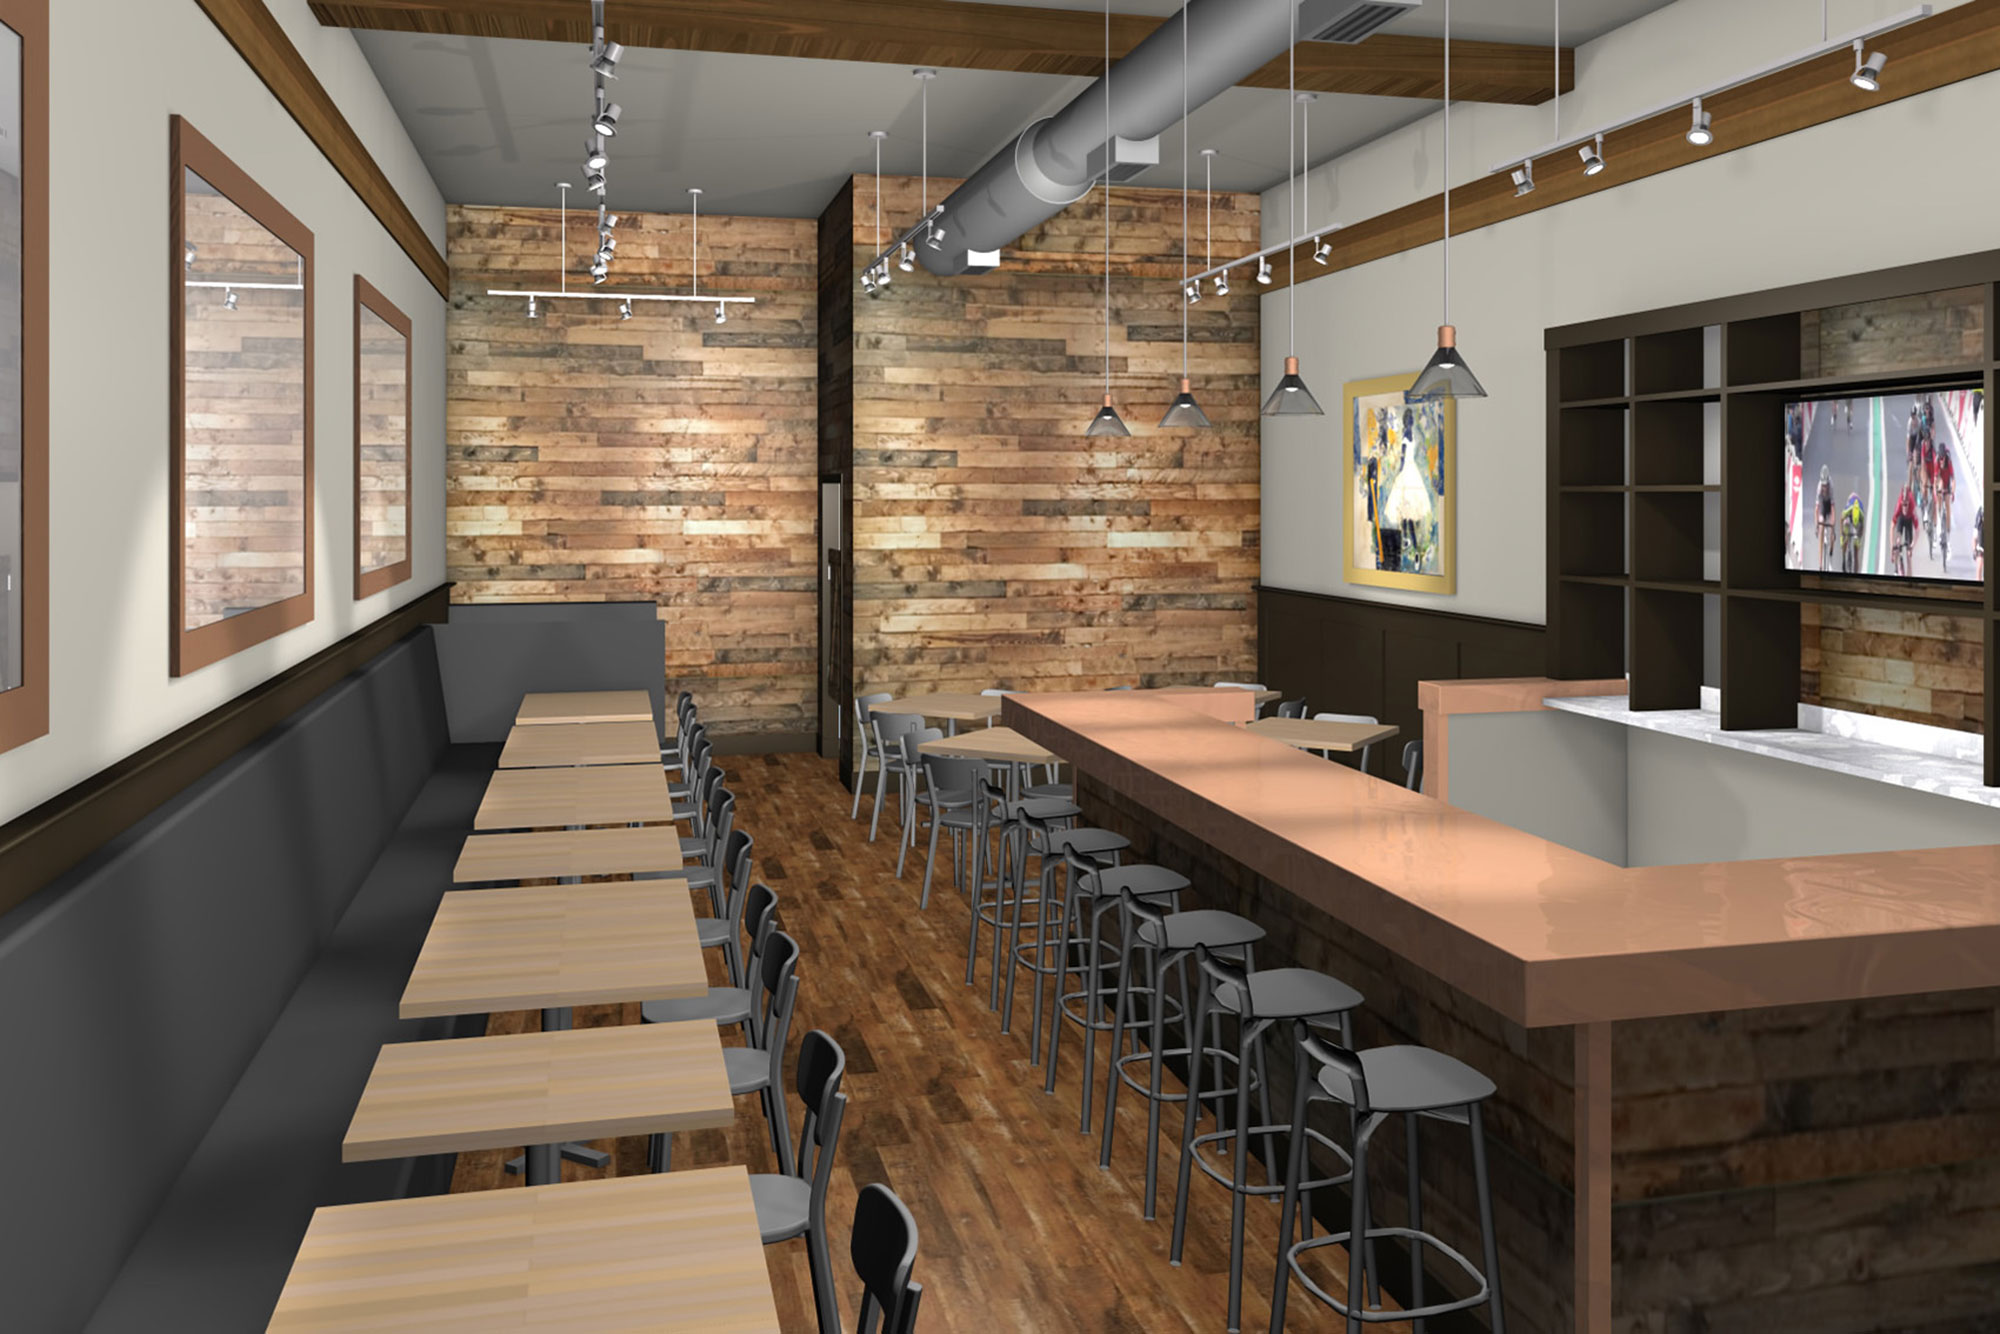 Oak Park Restaurant Rendering